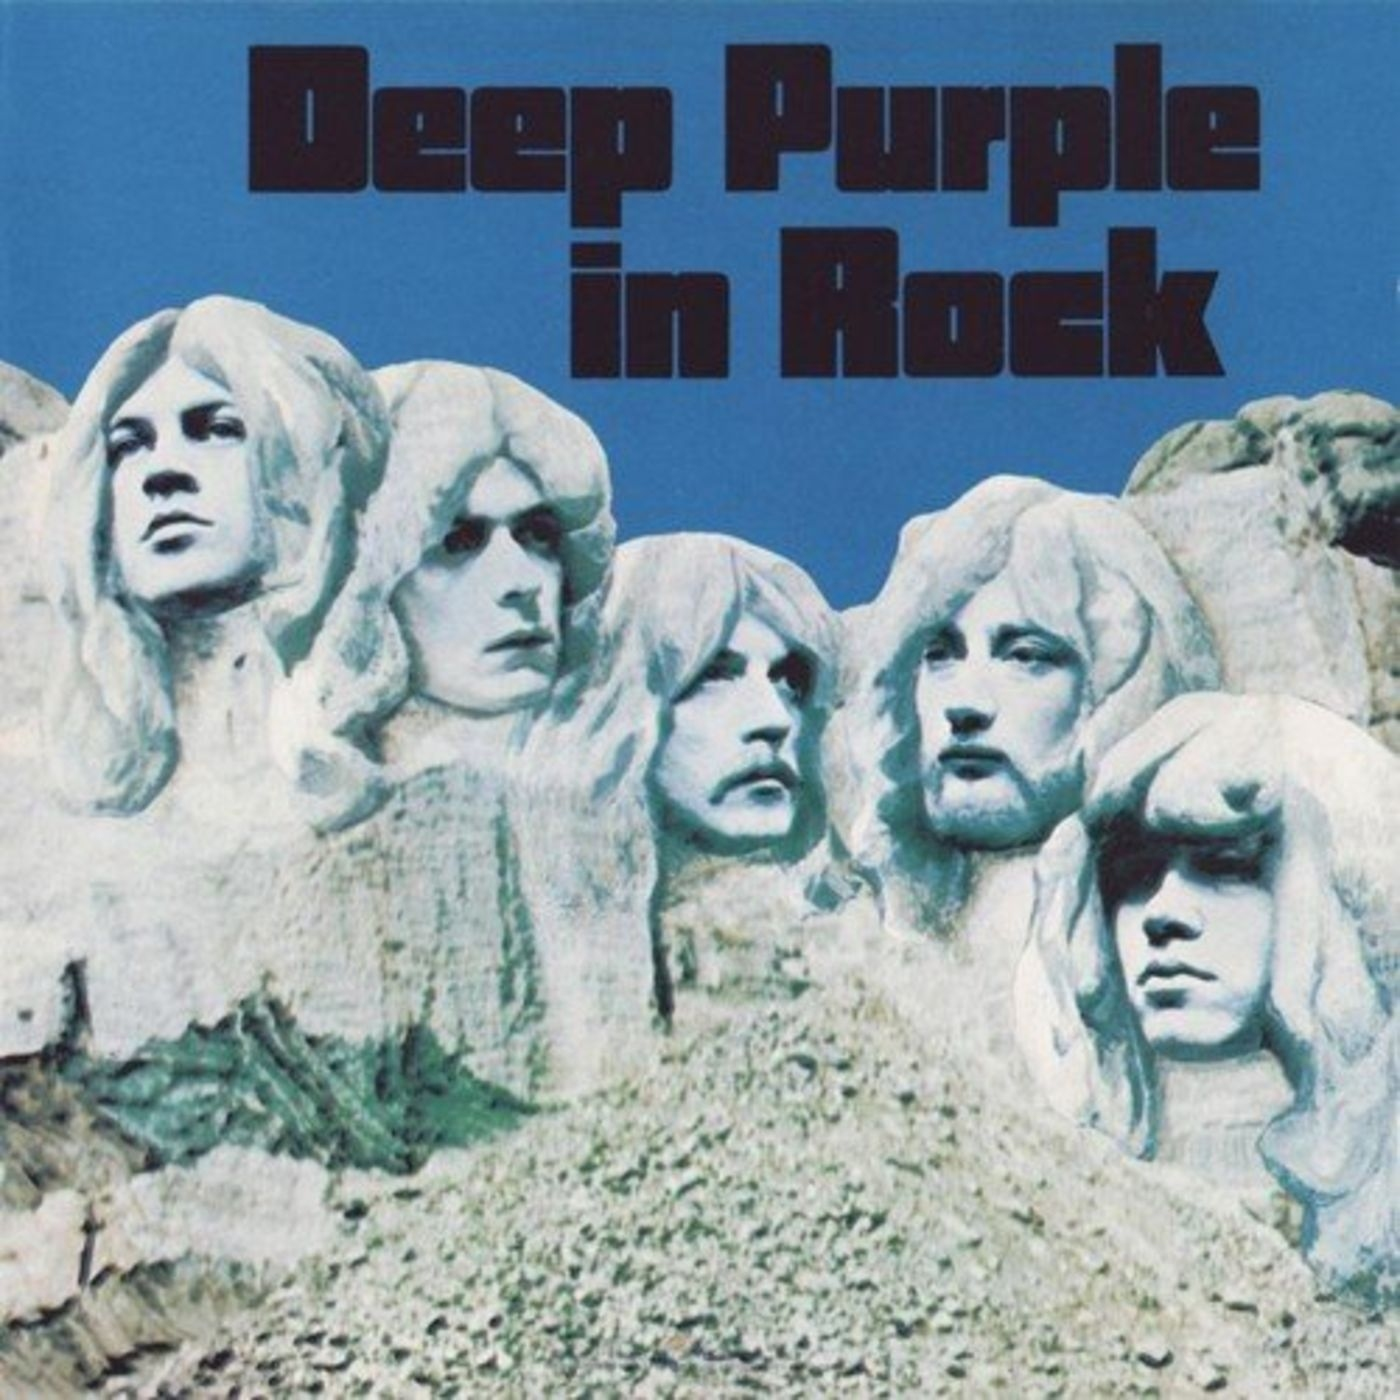 92903_deep_purpple_in_rock_harvest_records.011c6919